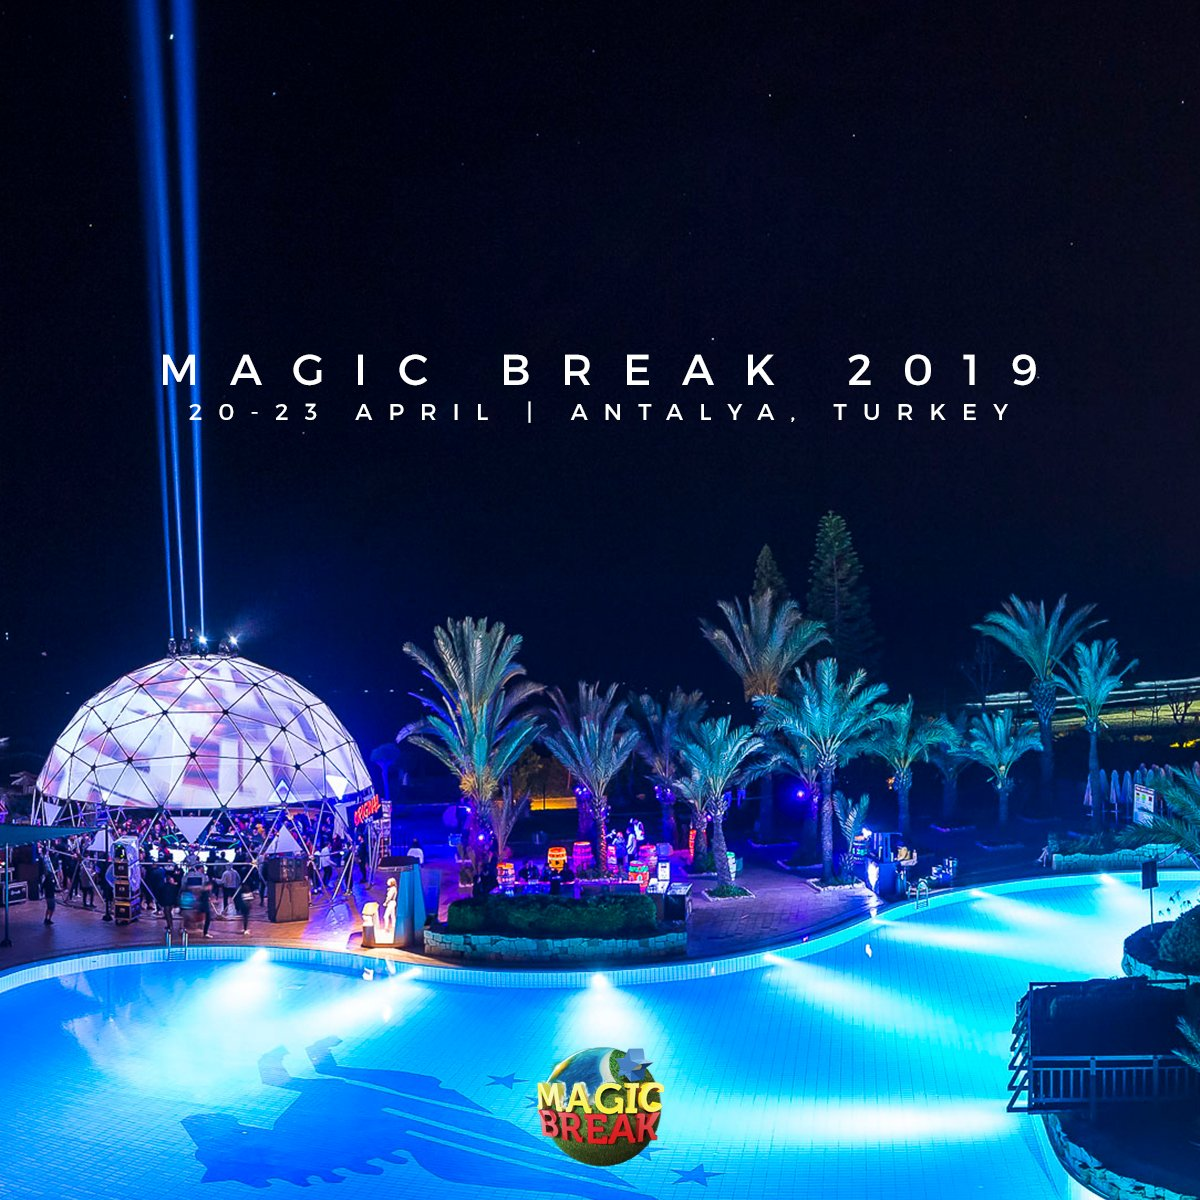 Magic Break 2019 Alanya